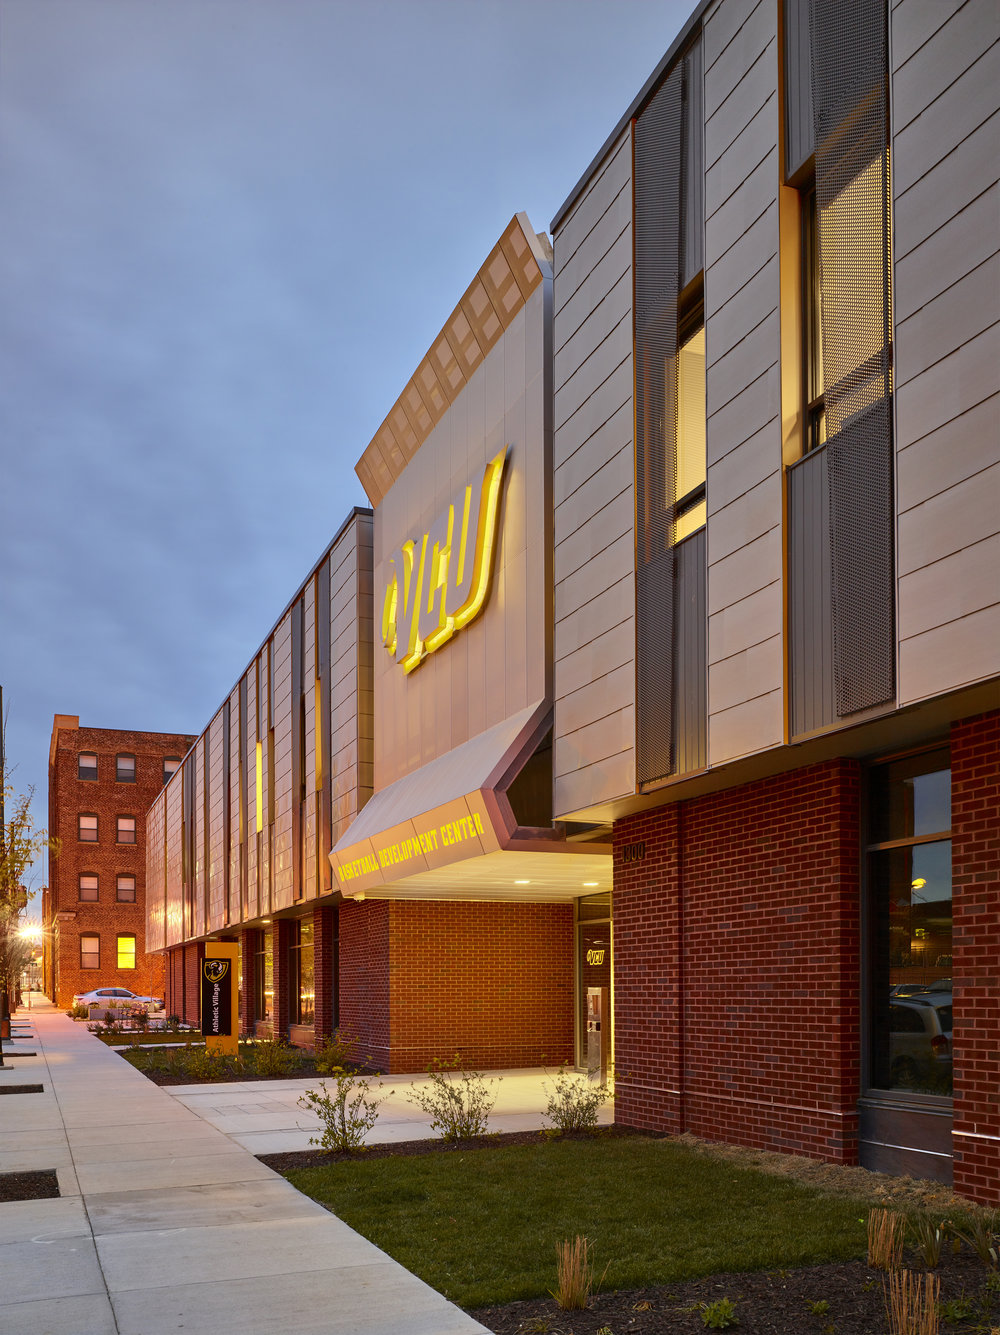 VCU_Basketball_Development_Center_4